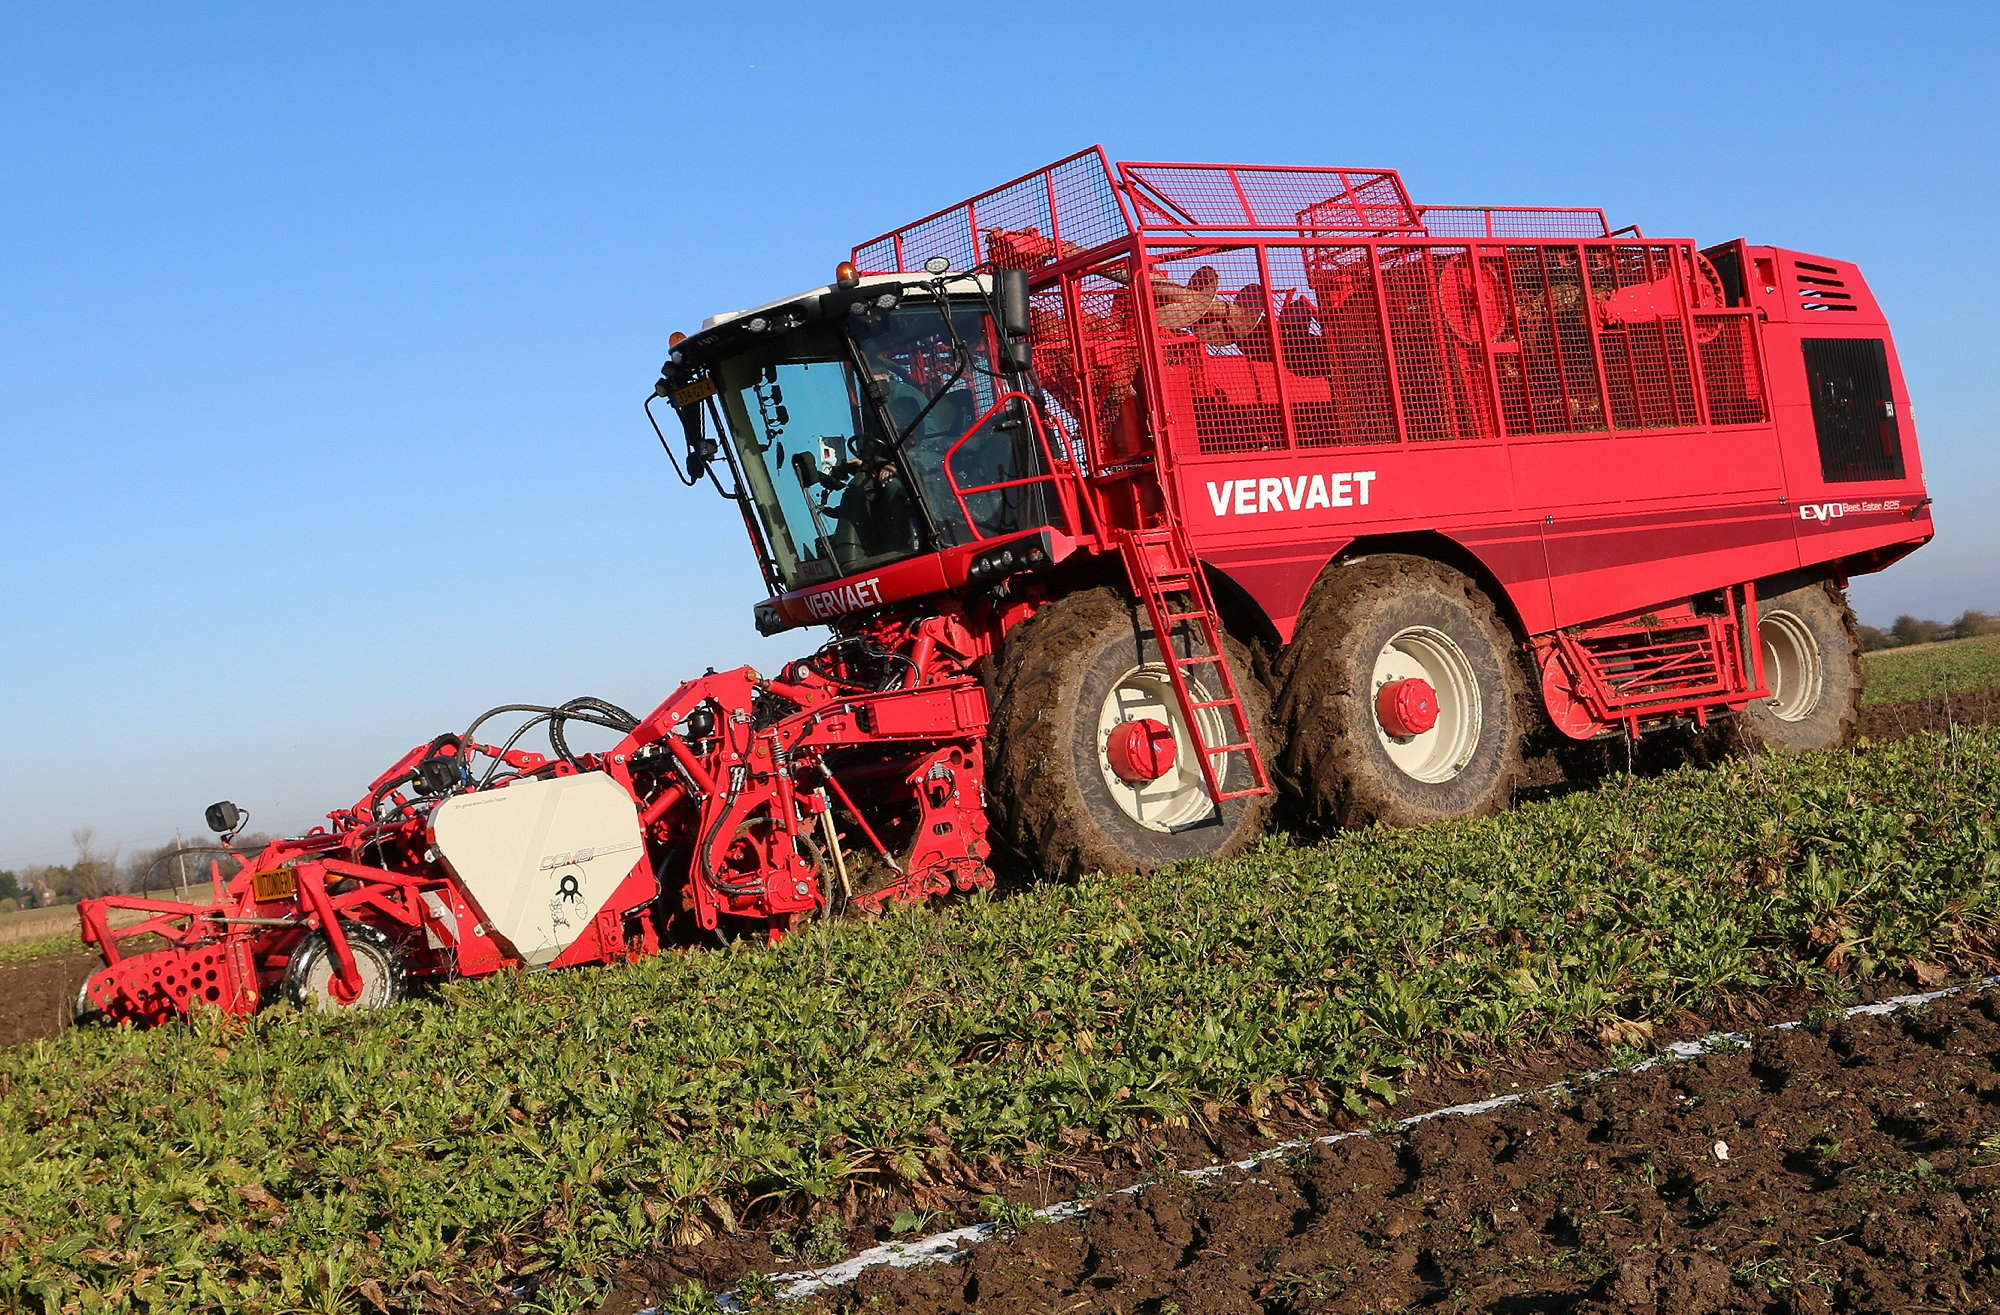 Vervaet sugar beet harvesters are now available with a new rollerbed primary cleaner.